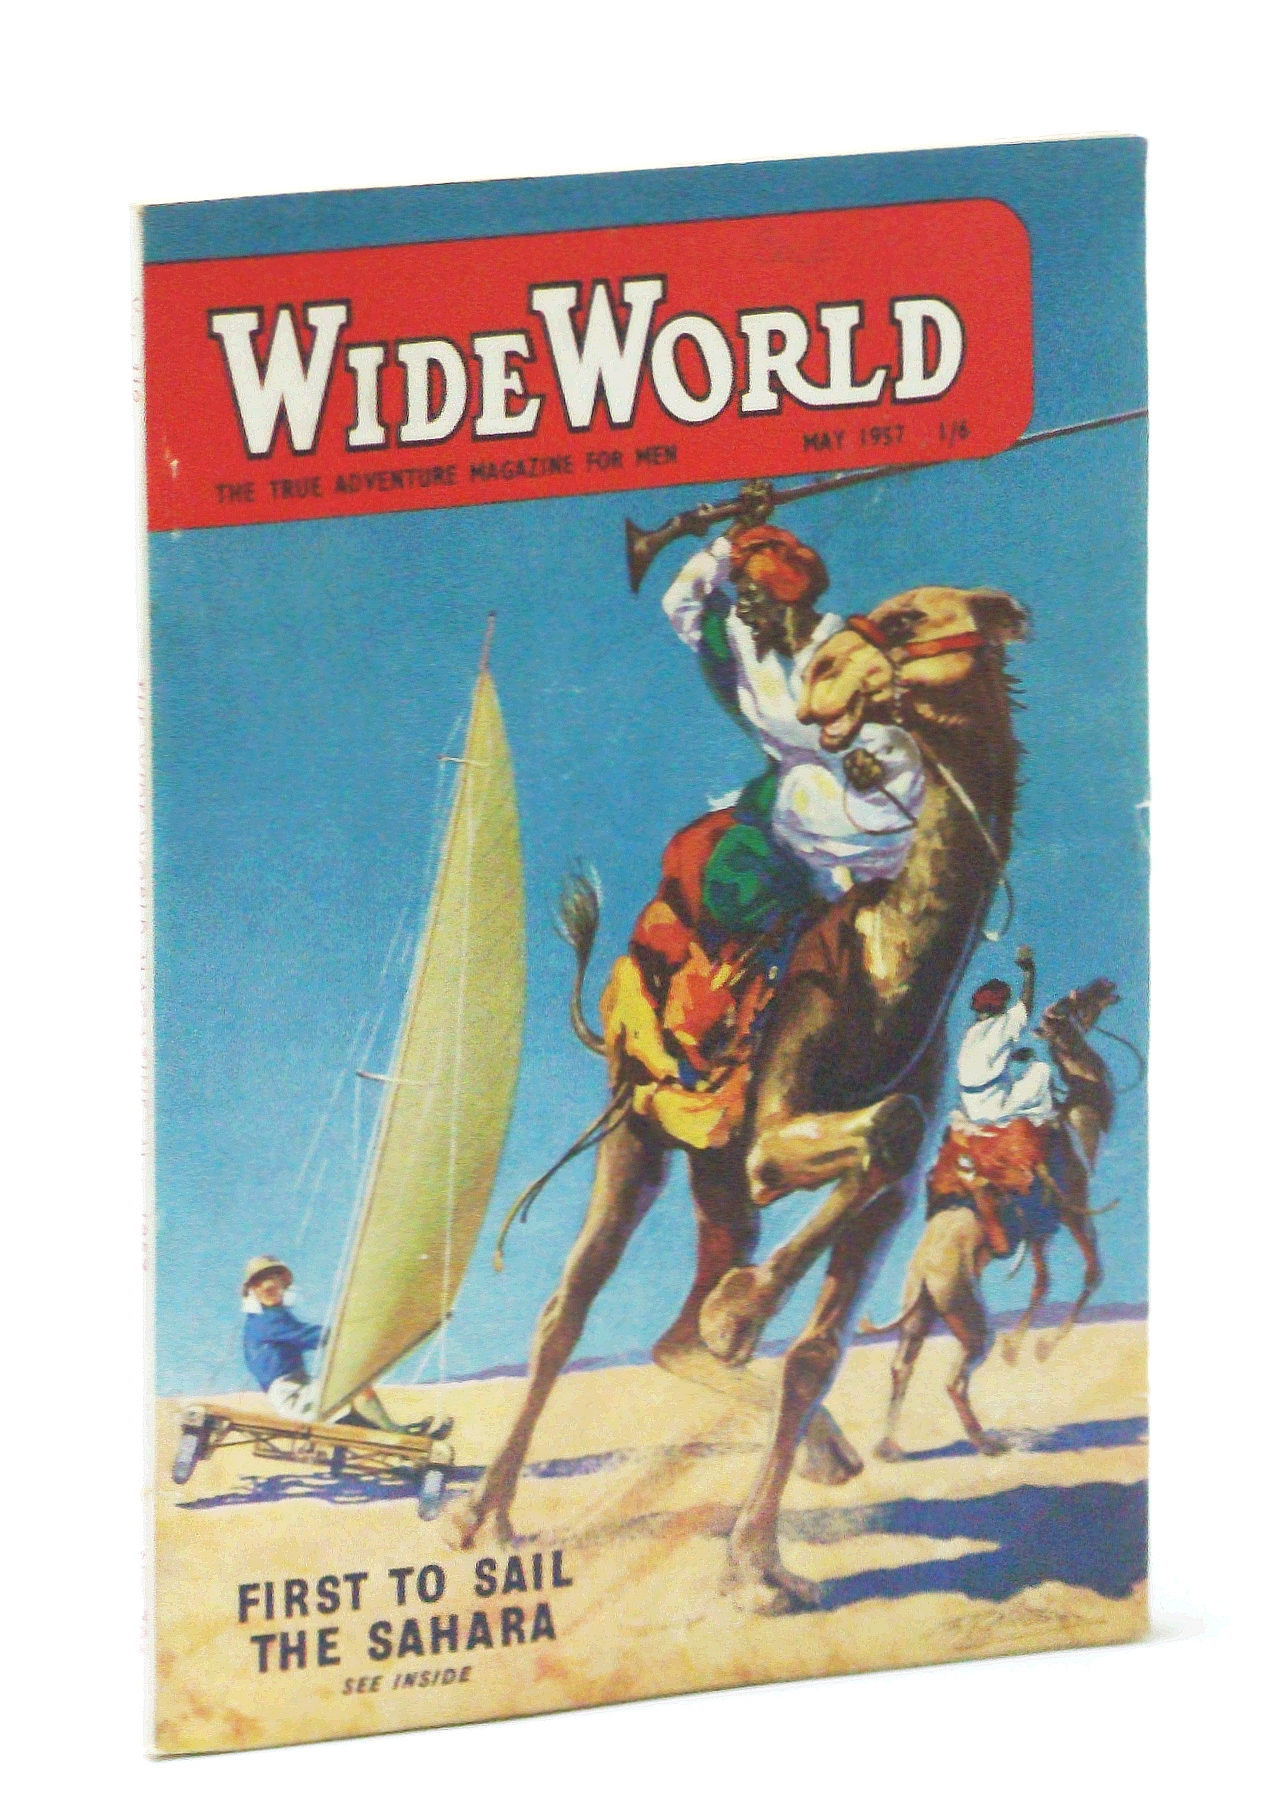 Image for The Wide World - The True Adventure Magazine for Men, May 1957 - Windsailing the Sahara / The Squaw's Curse